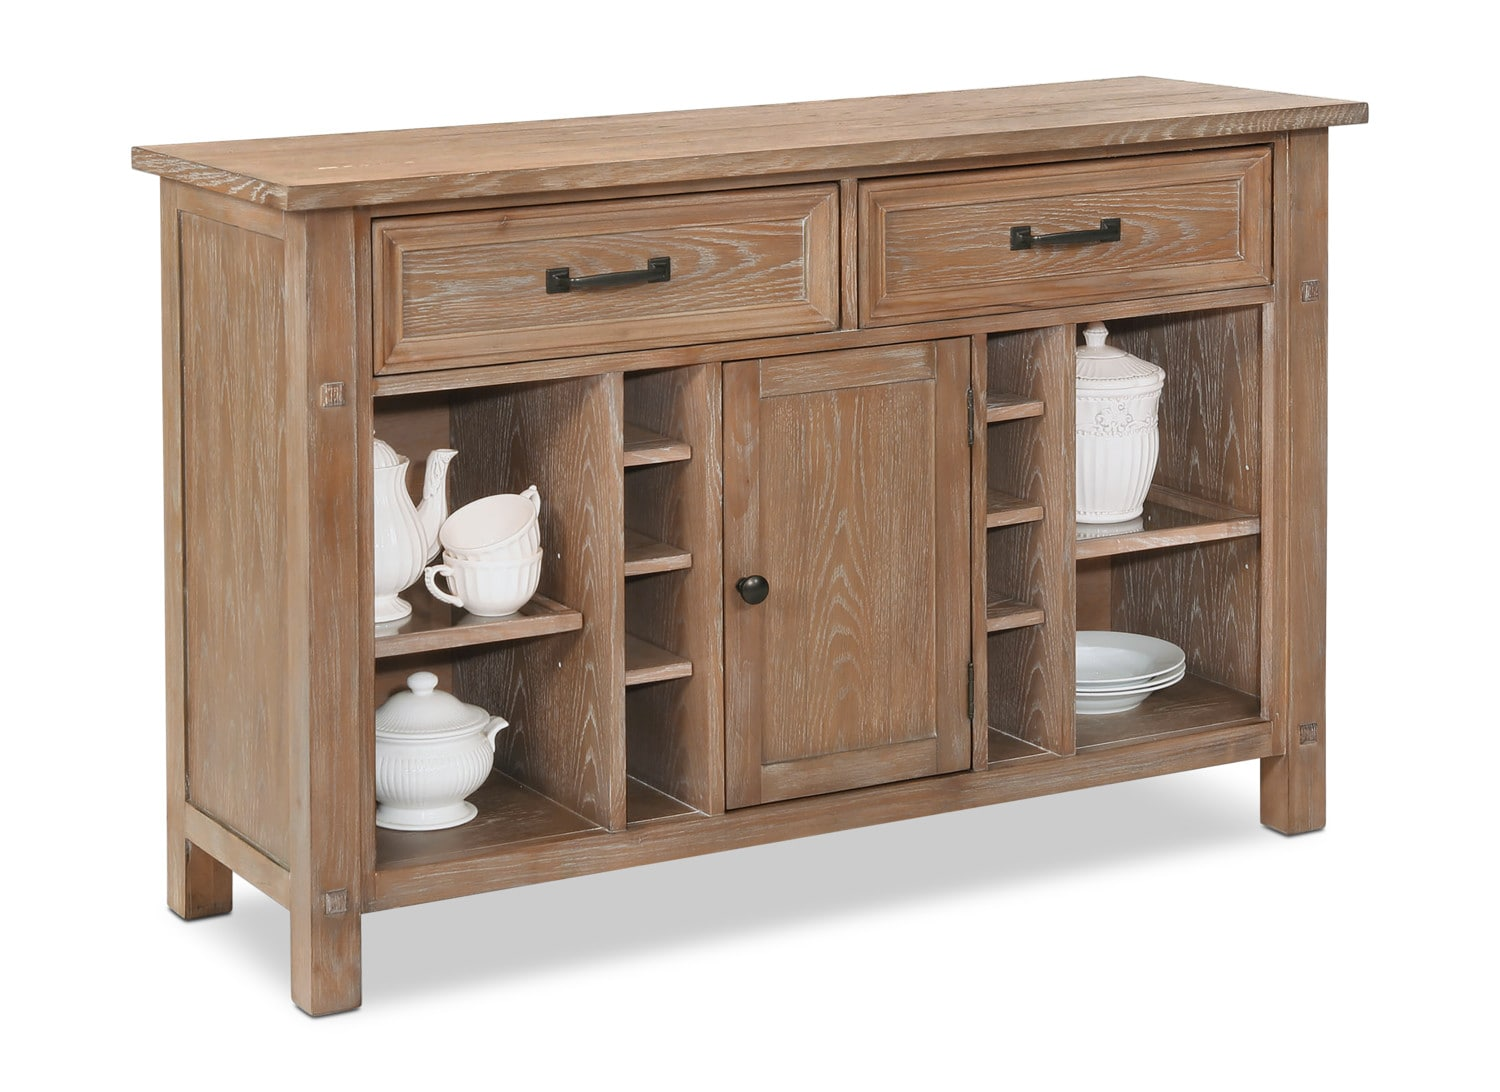 Dining Room Furniture - August Sideboard